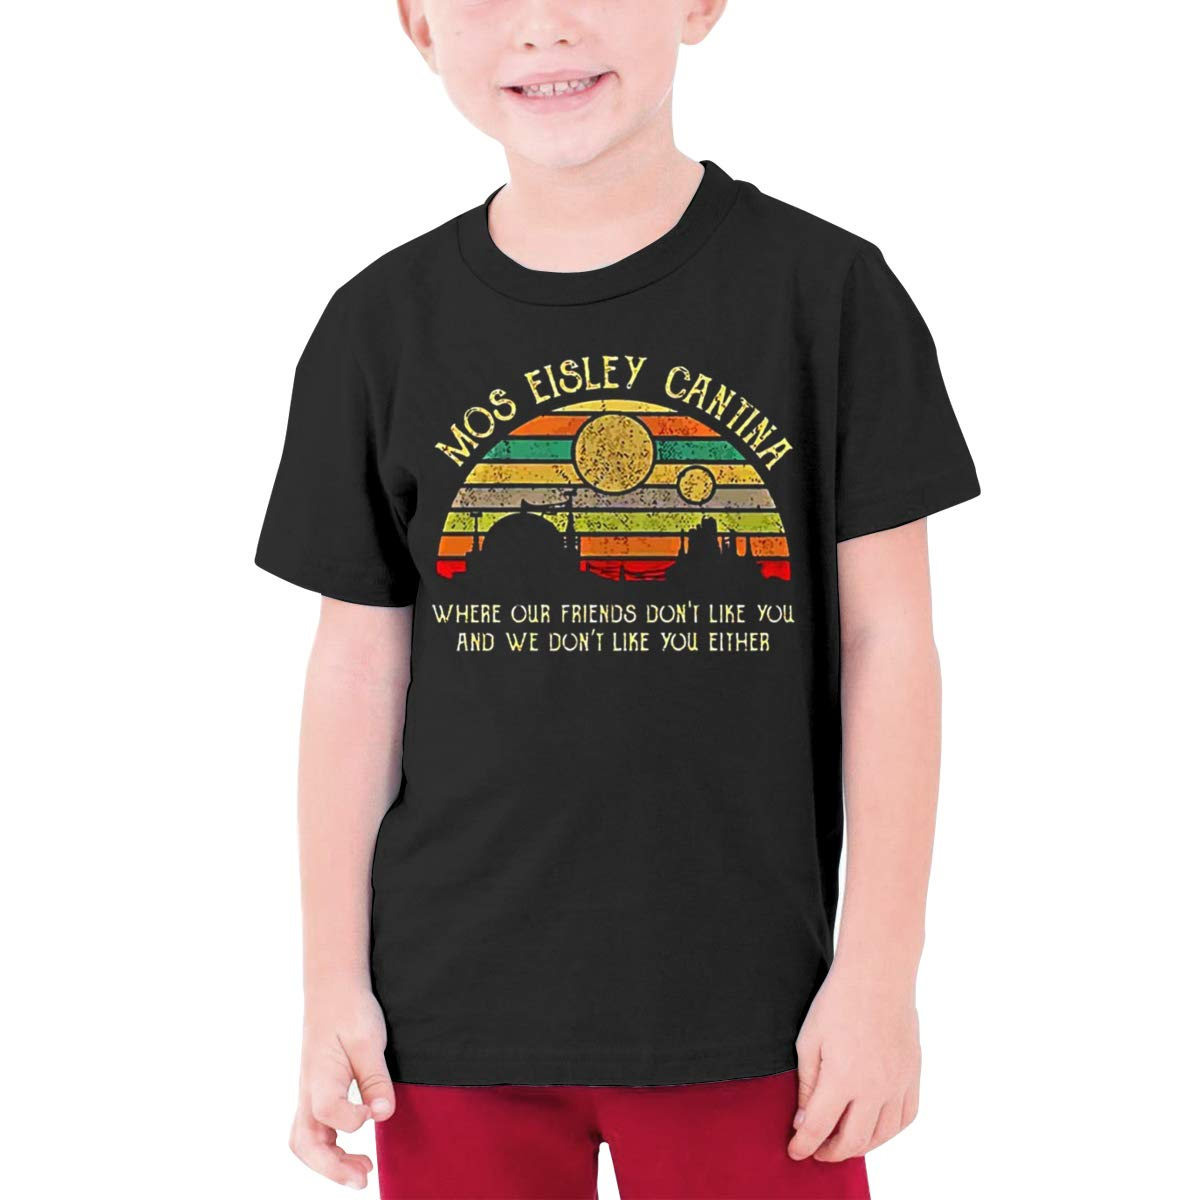 Alffe Mos-Eisley-Cantina-Where-Our-Friends-Dont-Like-You T-Shirt Boy Kids O-Neck 3D Printing Youth Fashion Tops